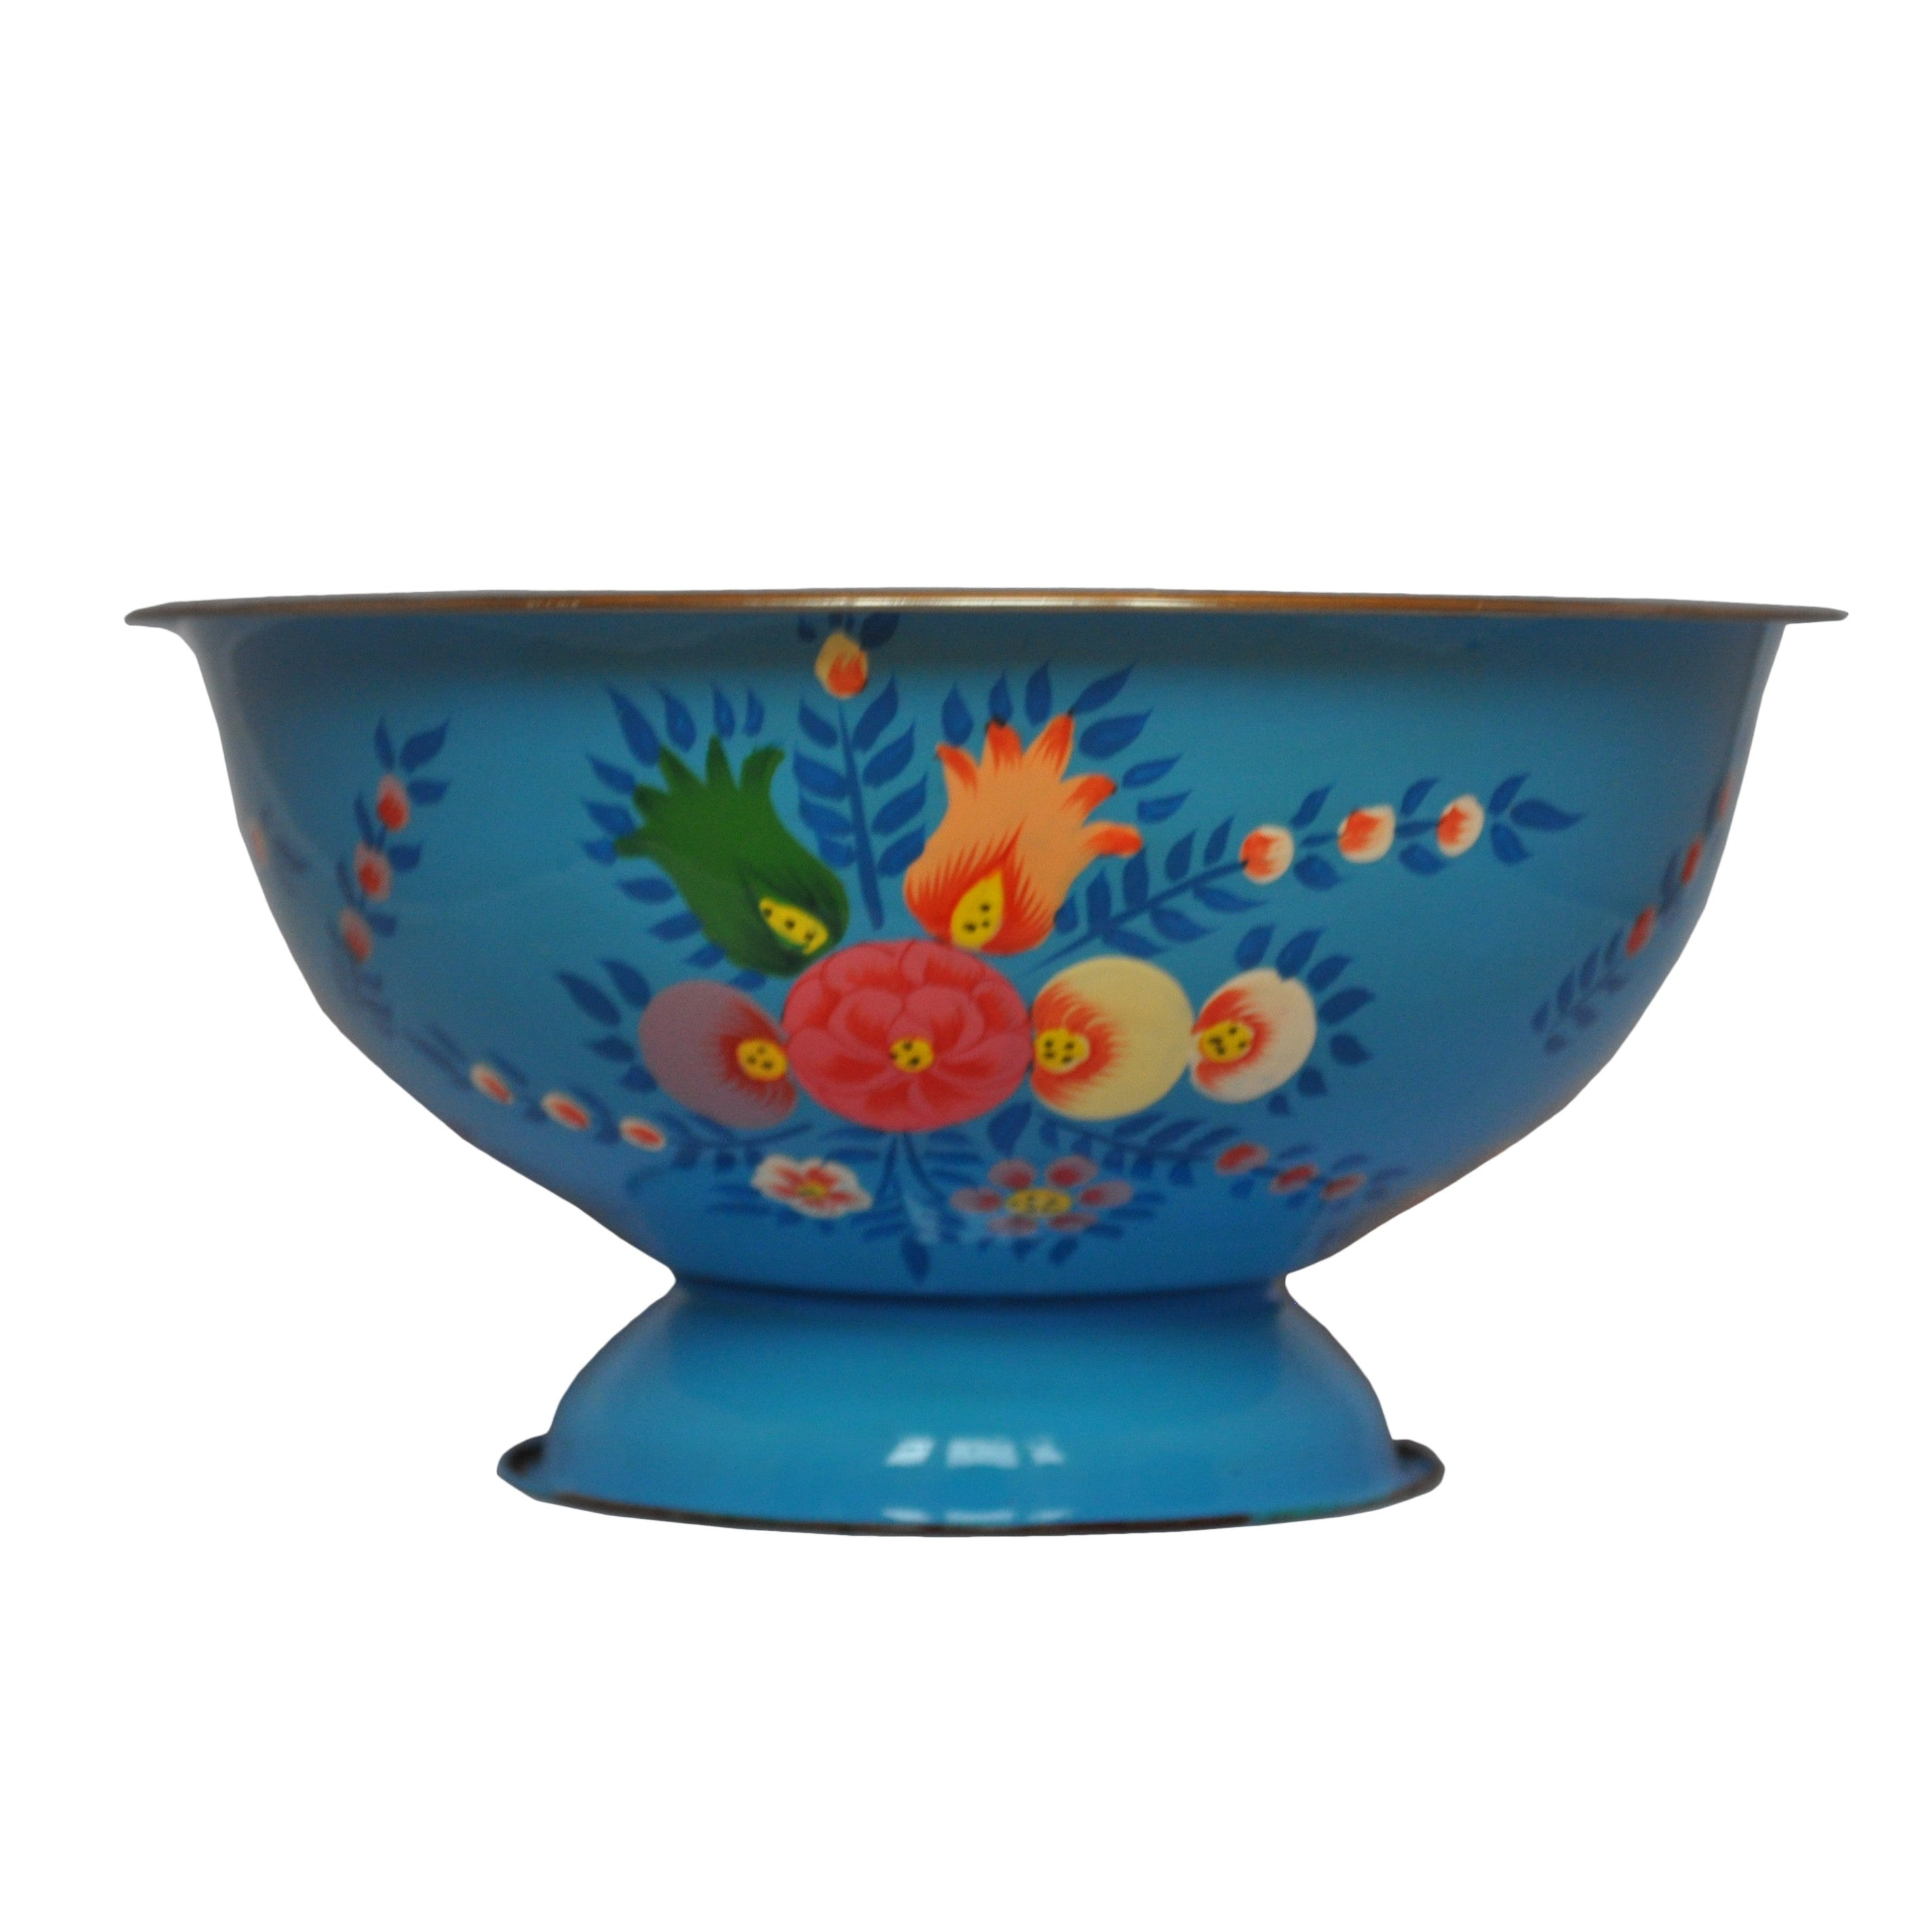 Bright Blue Enamel Bowl With Floral Splash by Jasmine White on OOSTOR.com